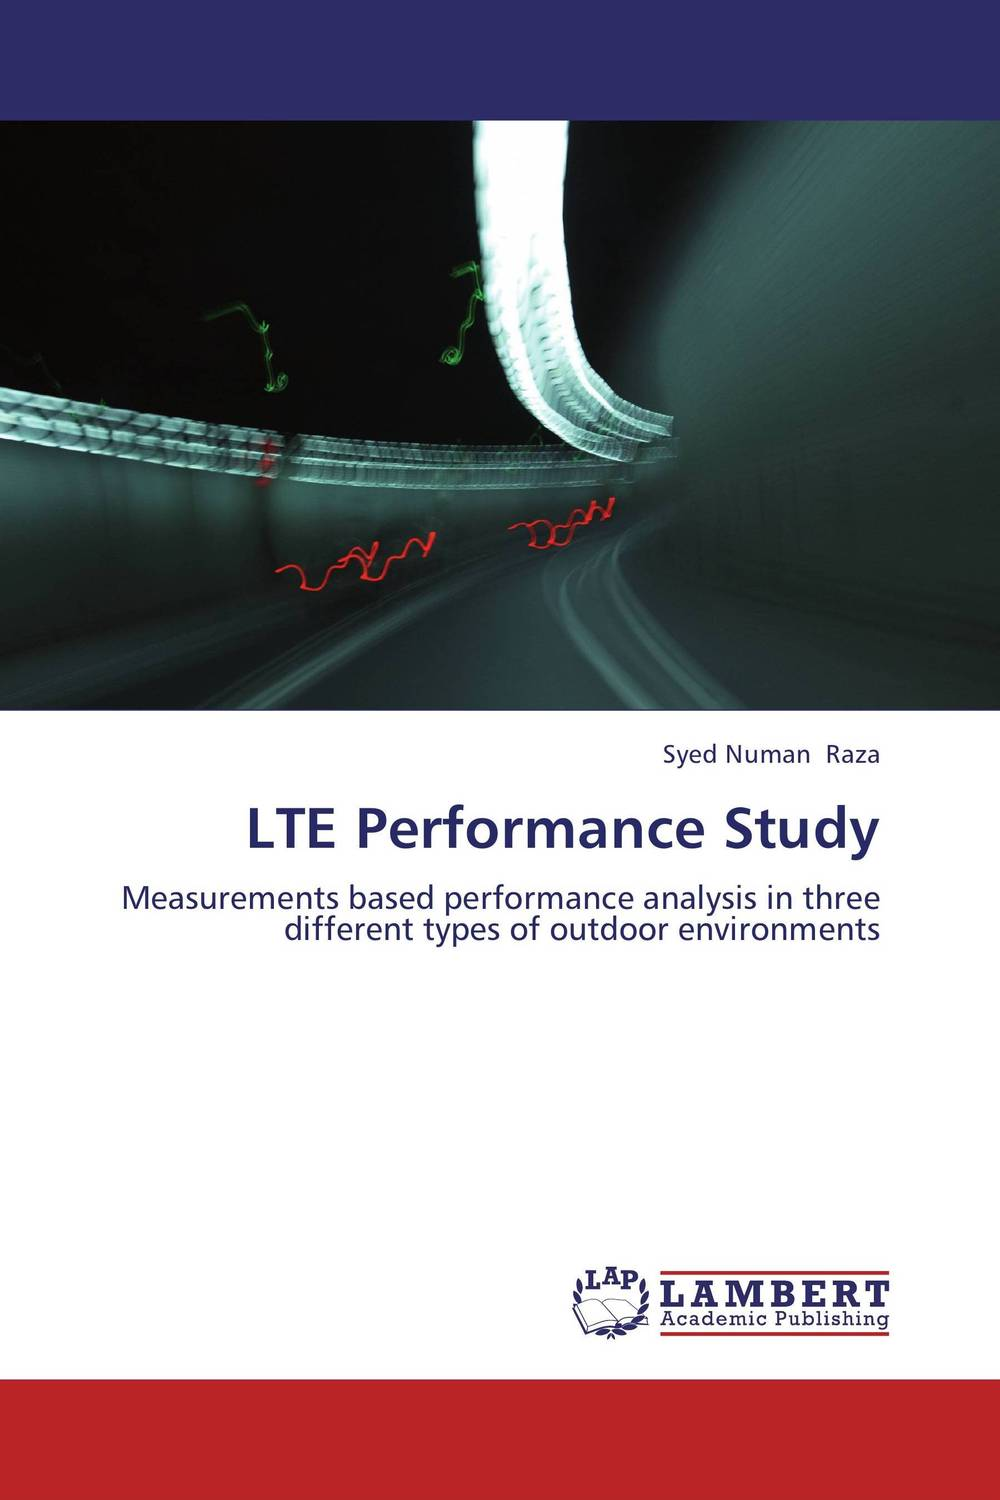 LTE Performance Study david parmenter key performance indicators